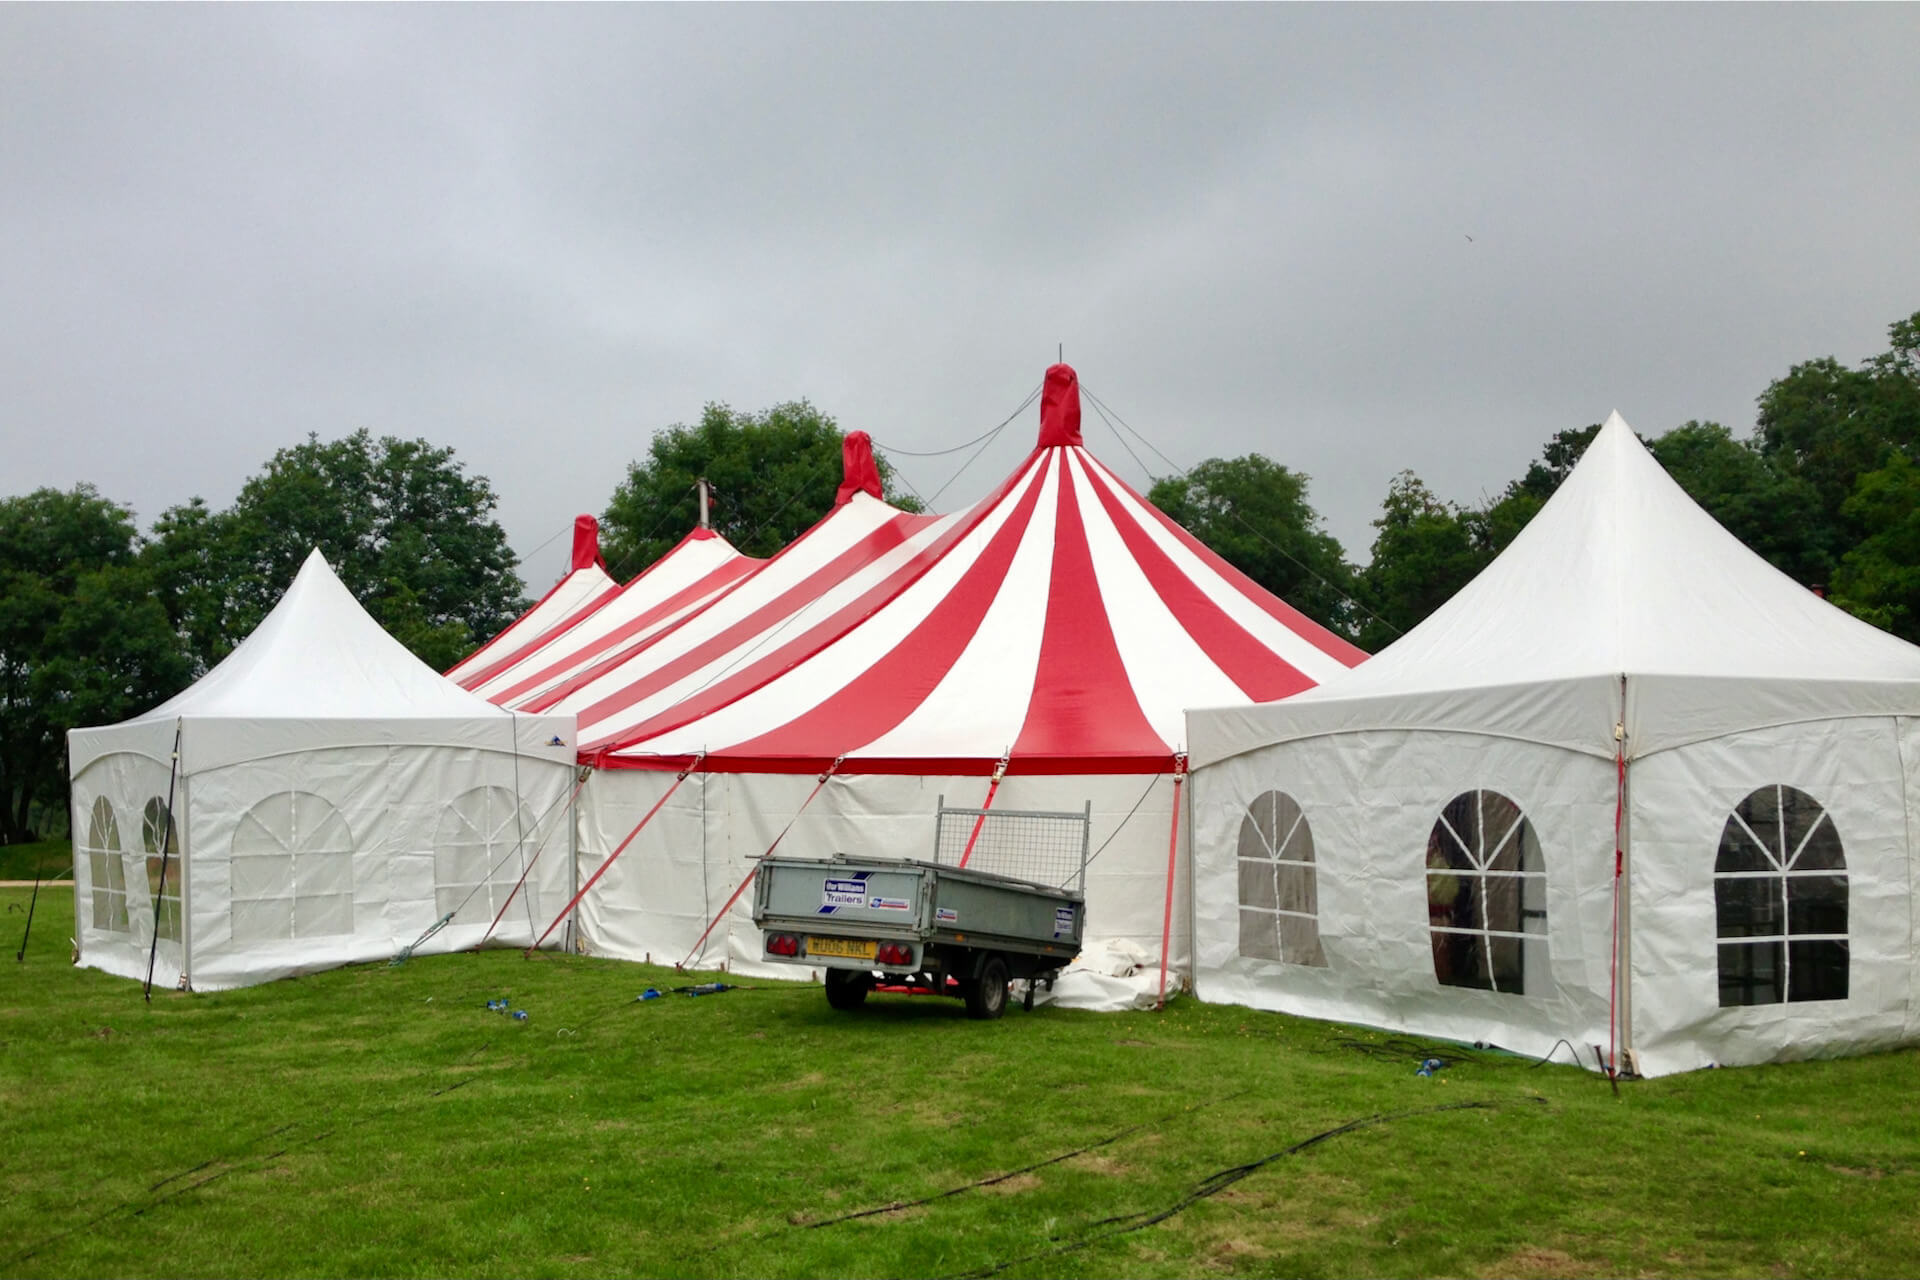 Catering & service tents